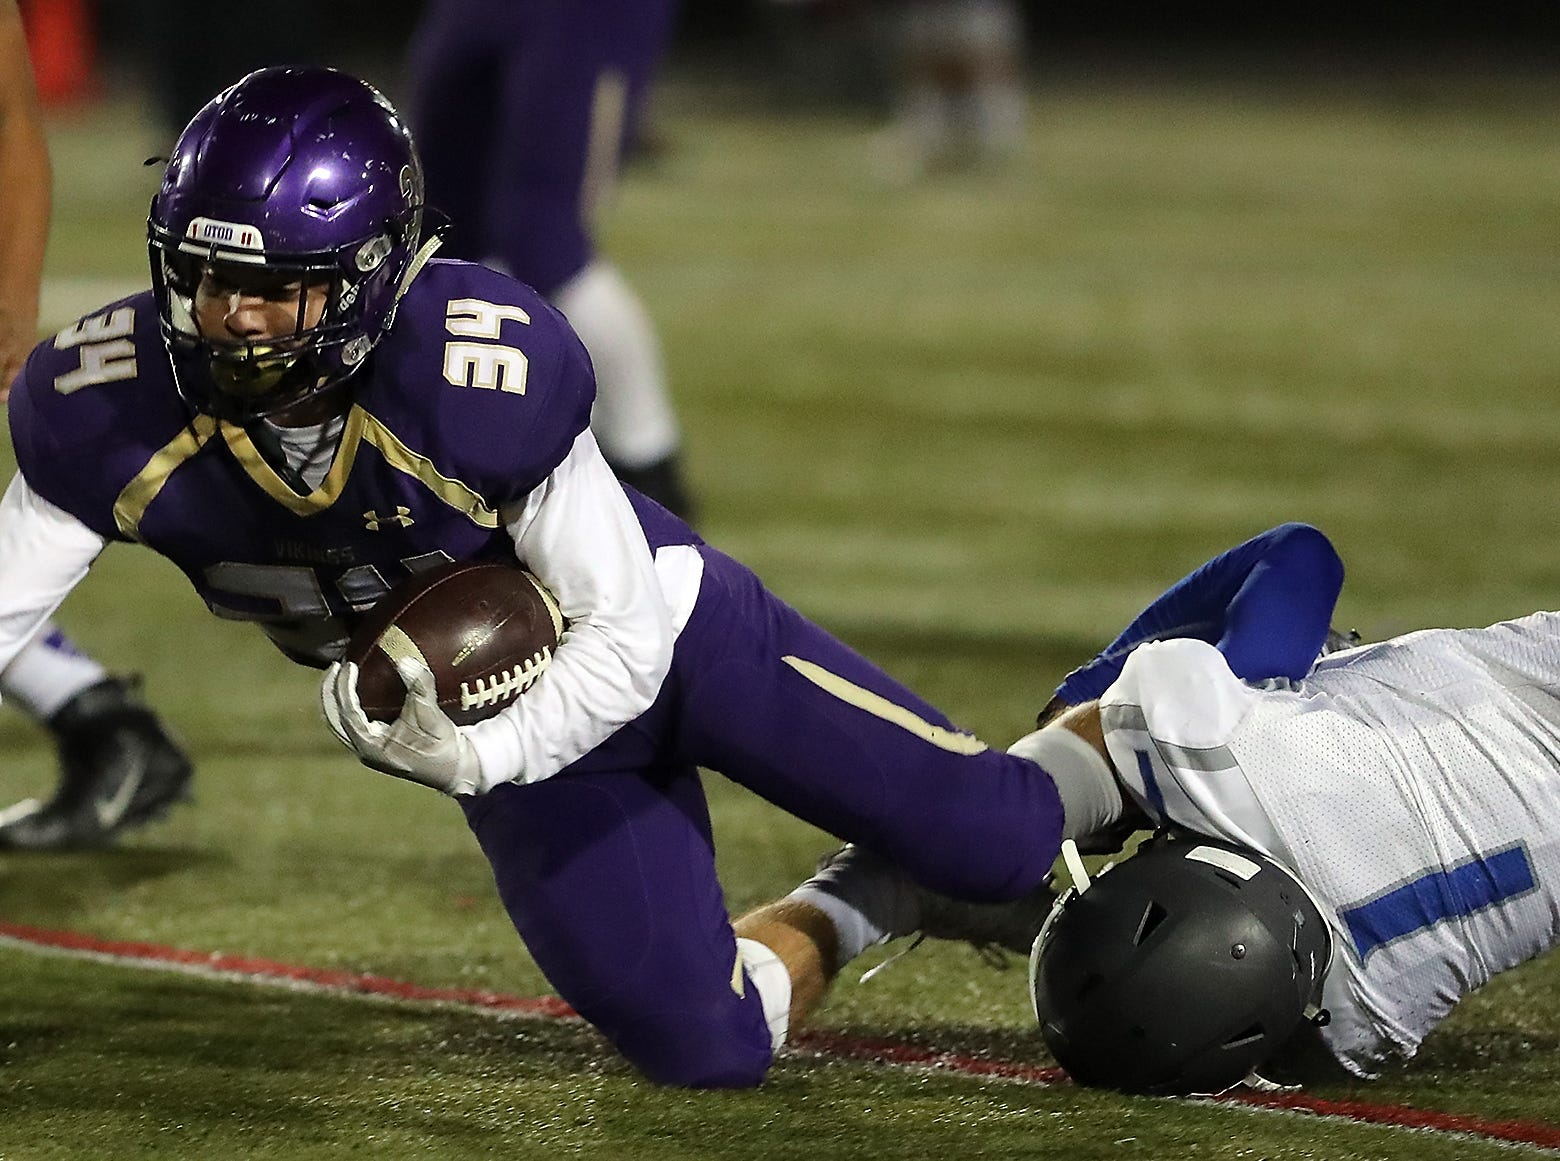 North Kitsap's Clayton Willilama (34) is brought down by Olympic's Malcolm Dewalt (1) during the first half of ther game in Poulsbo on Friday. Williams scored three touchdowns in the Vikings' 60-19 win.